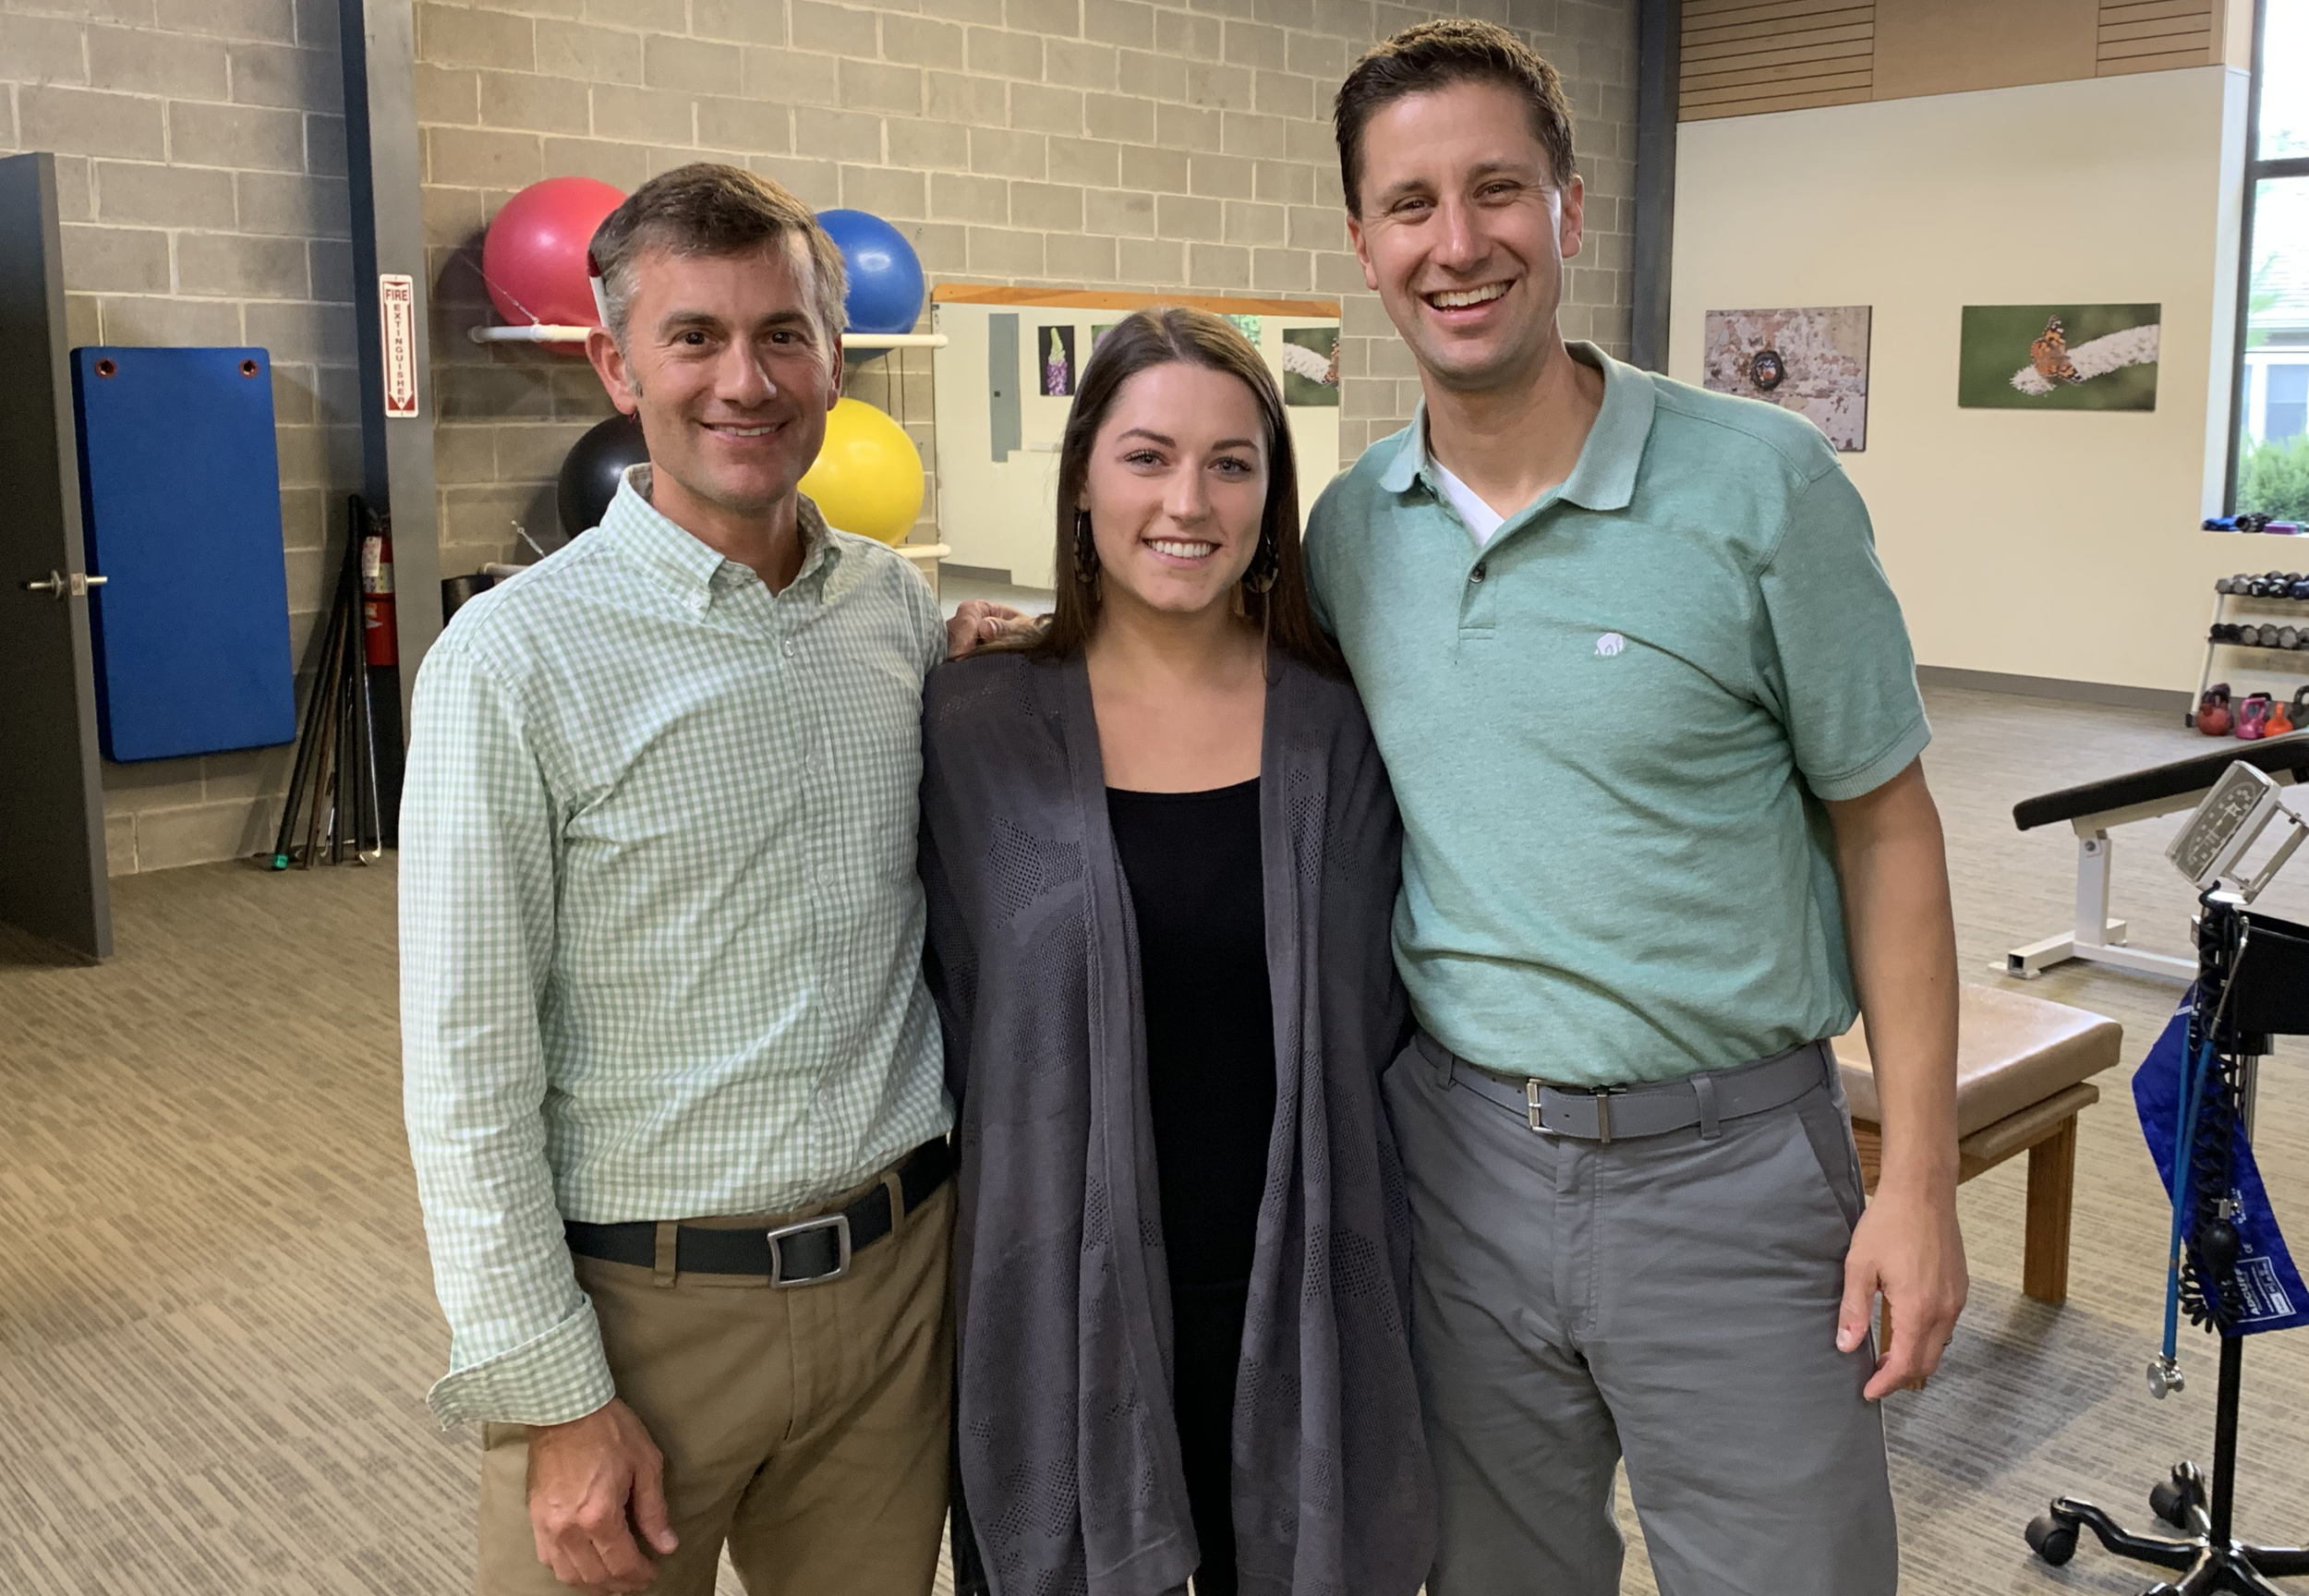 Michael Lapolla (Owner, Exercise Physiologist), Colleen Fraser (Exercise Physiologist) and Nicholas Galuardi (Owner, Exercise Physiologist).